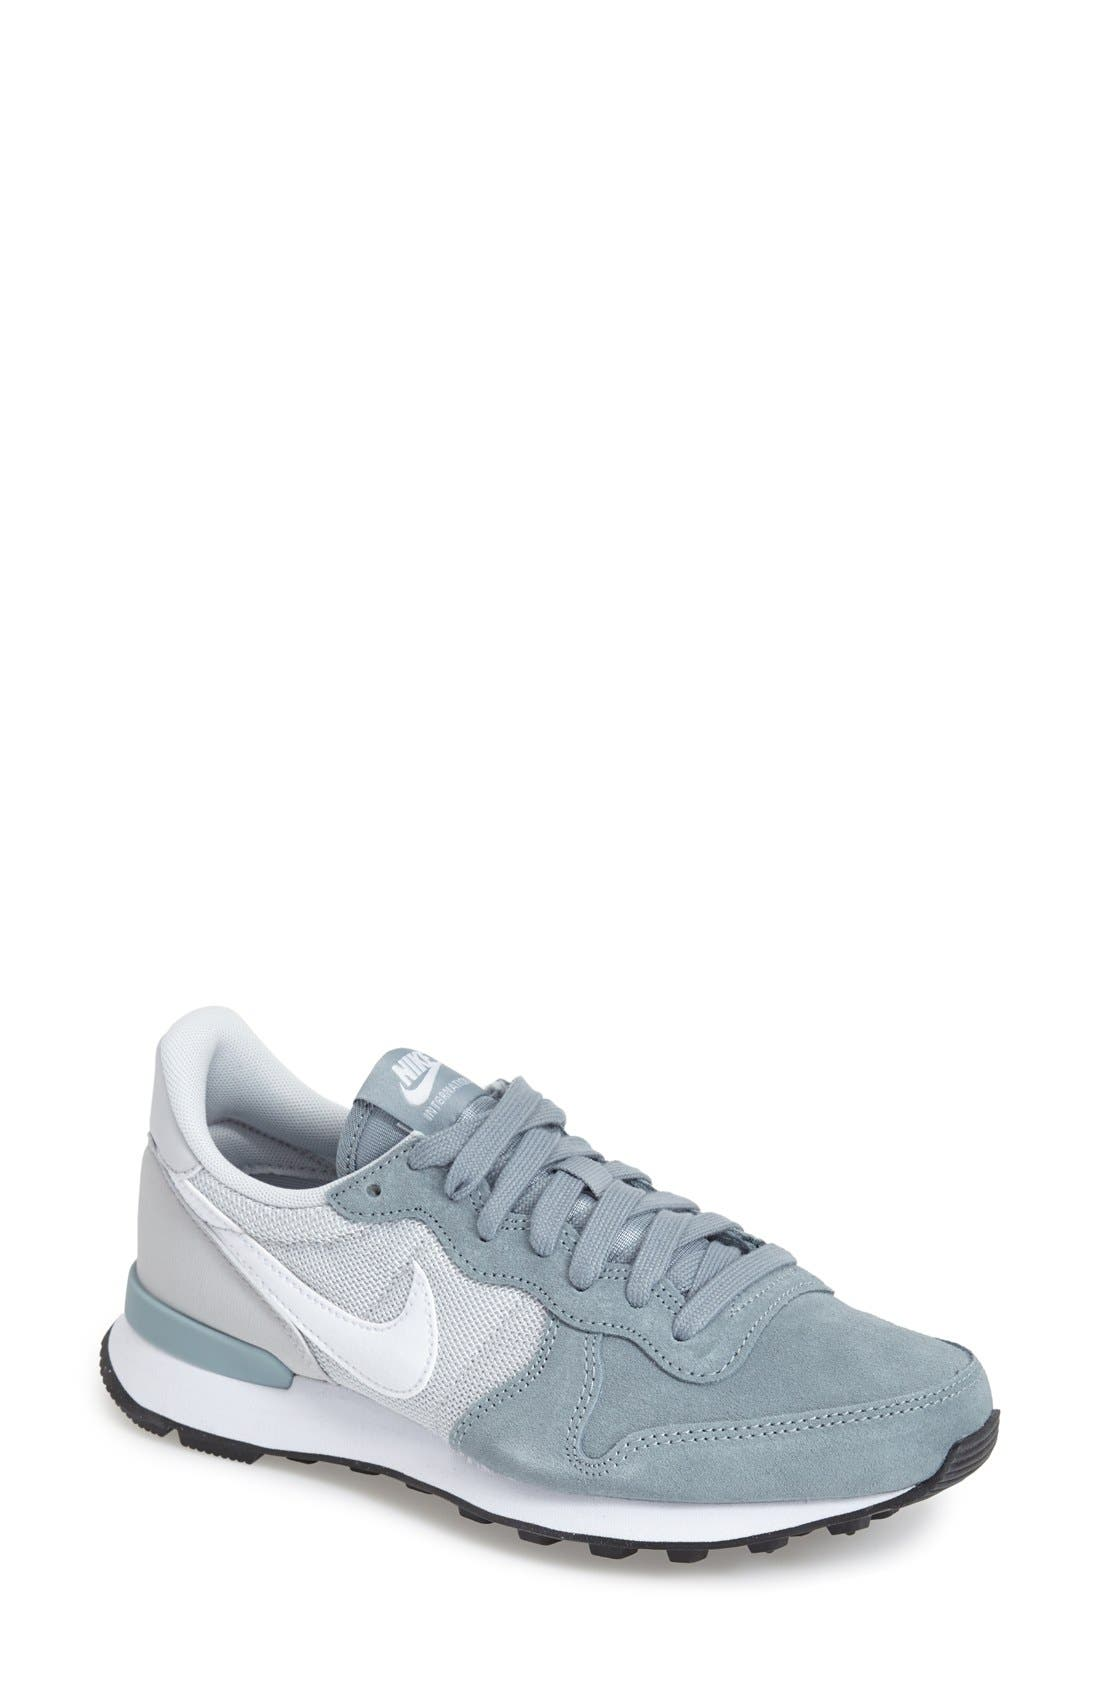 Alternate Image 1 Selected - Nike 'Internationalist' Sneaker (Women)